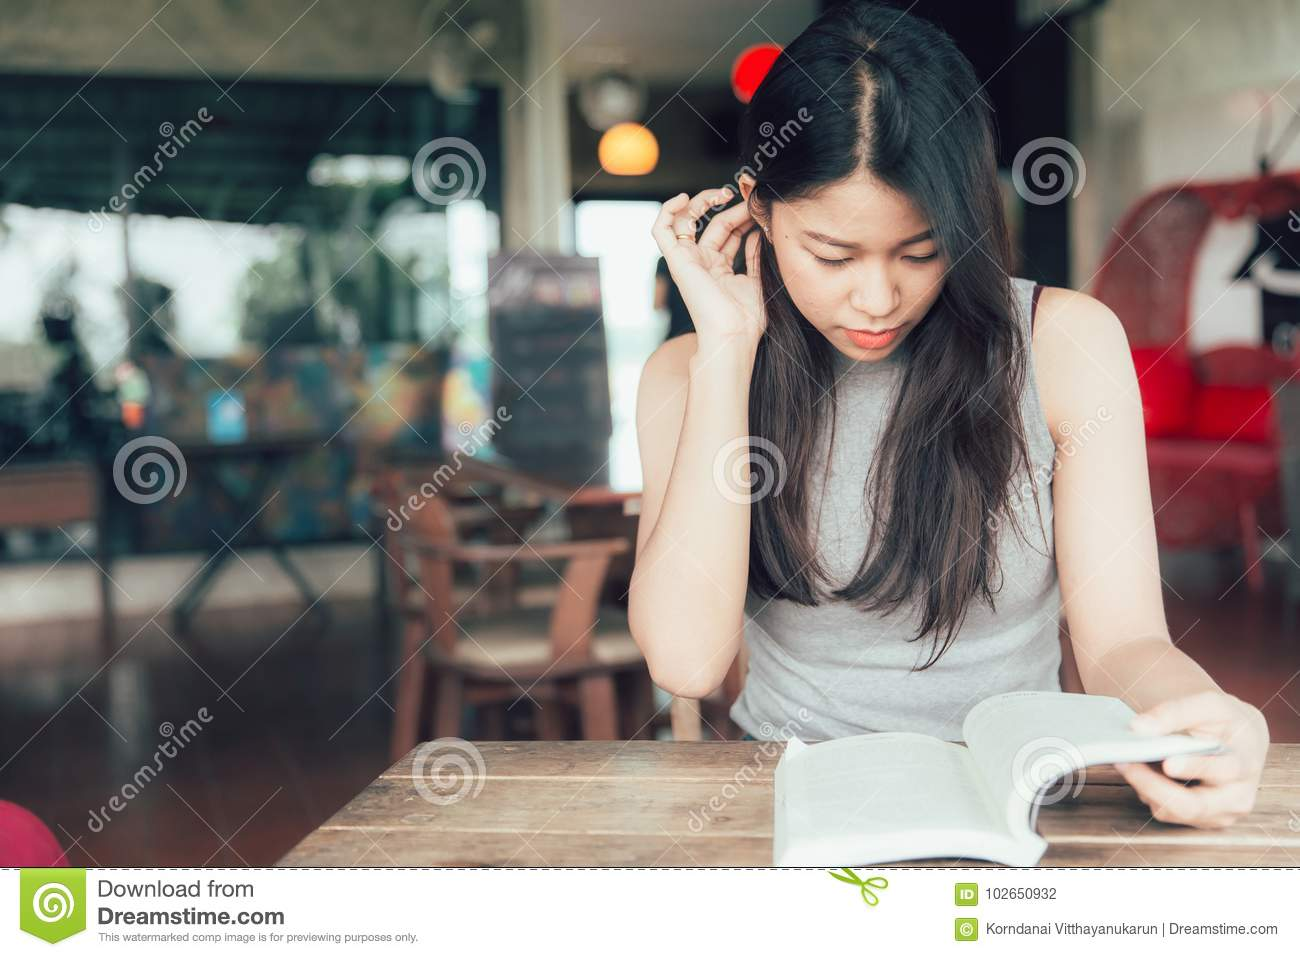 Enjoy relax times with reading books Asian women beautiful Thai teen read a book